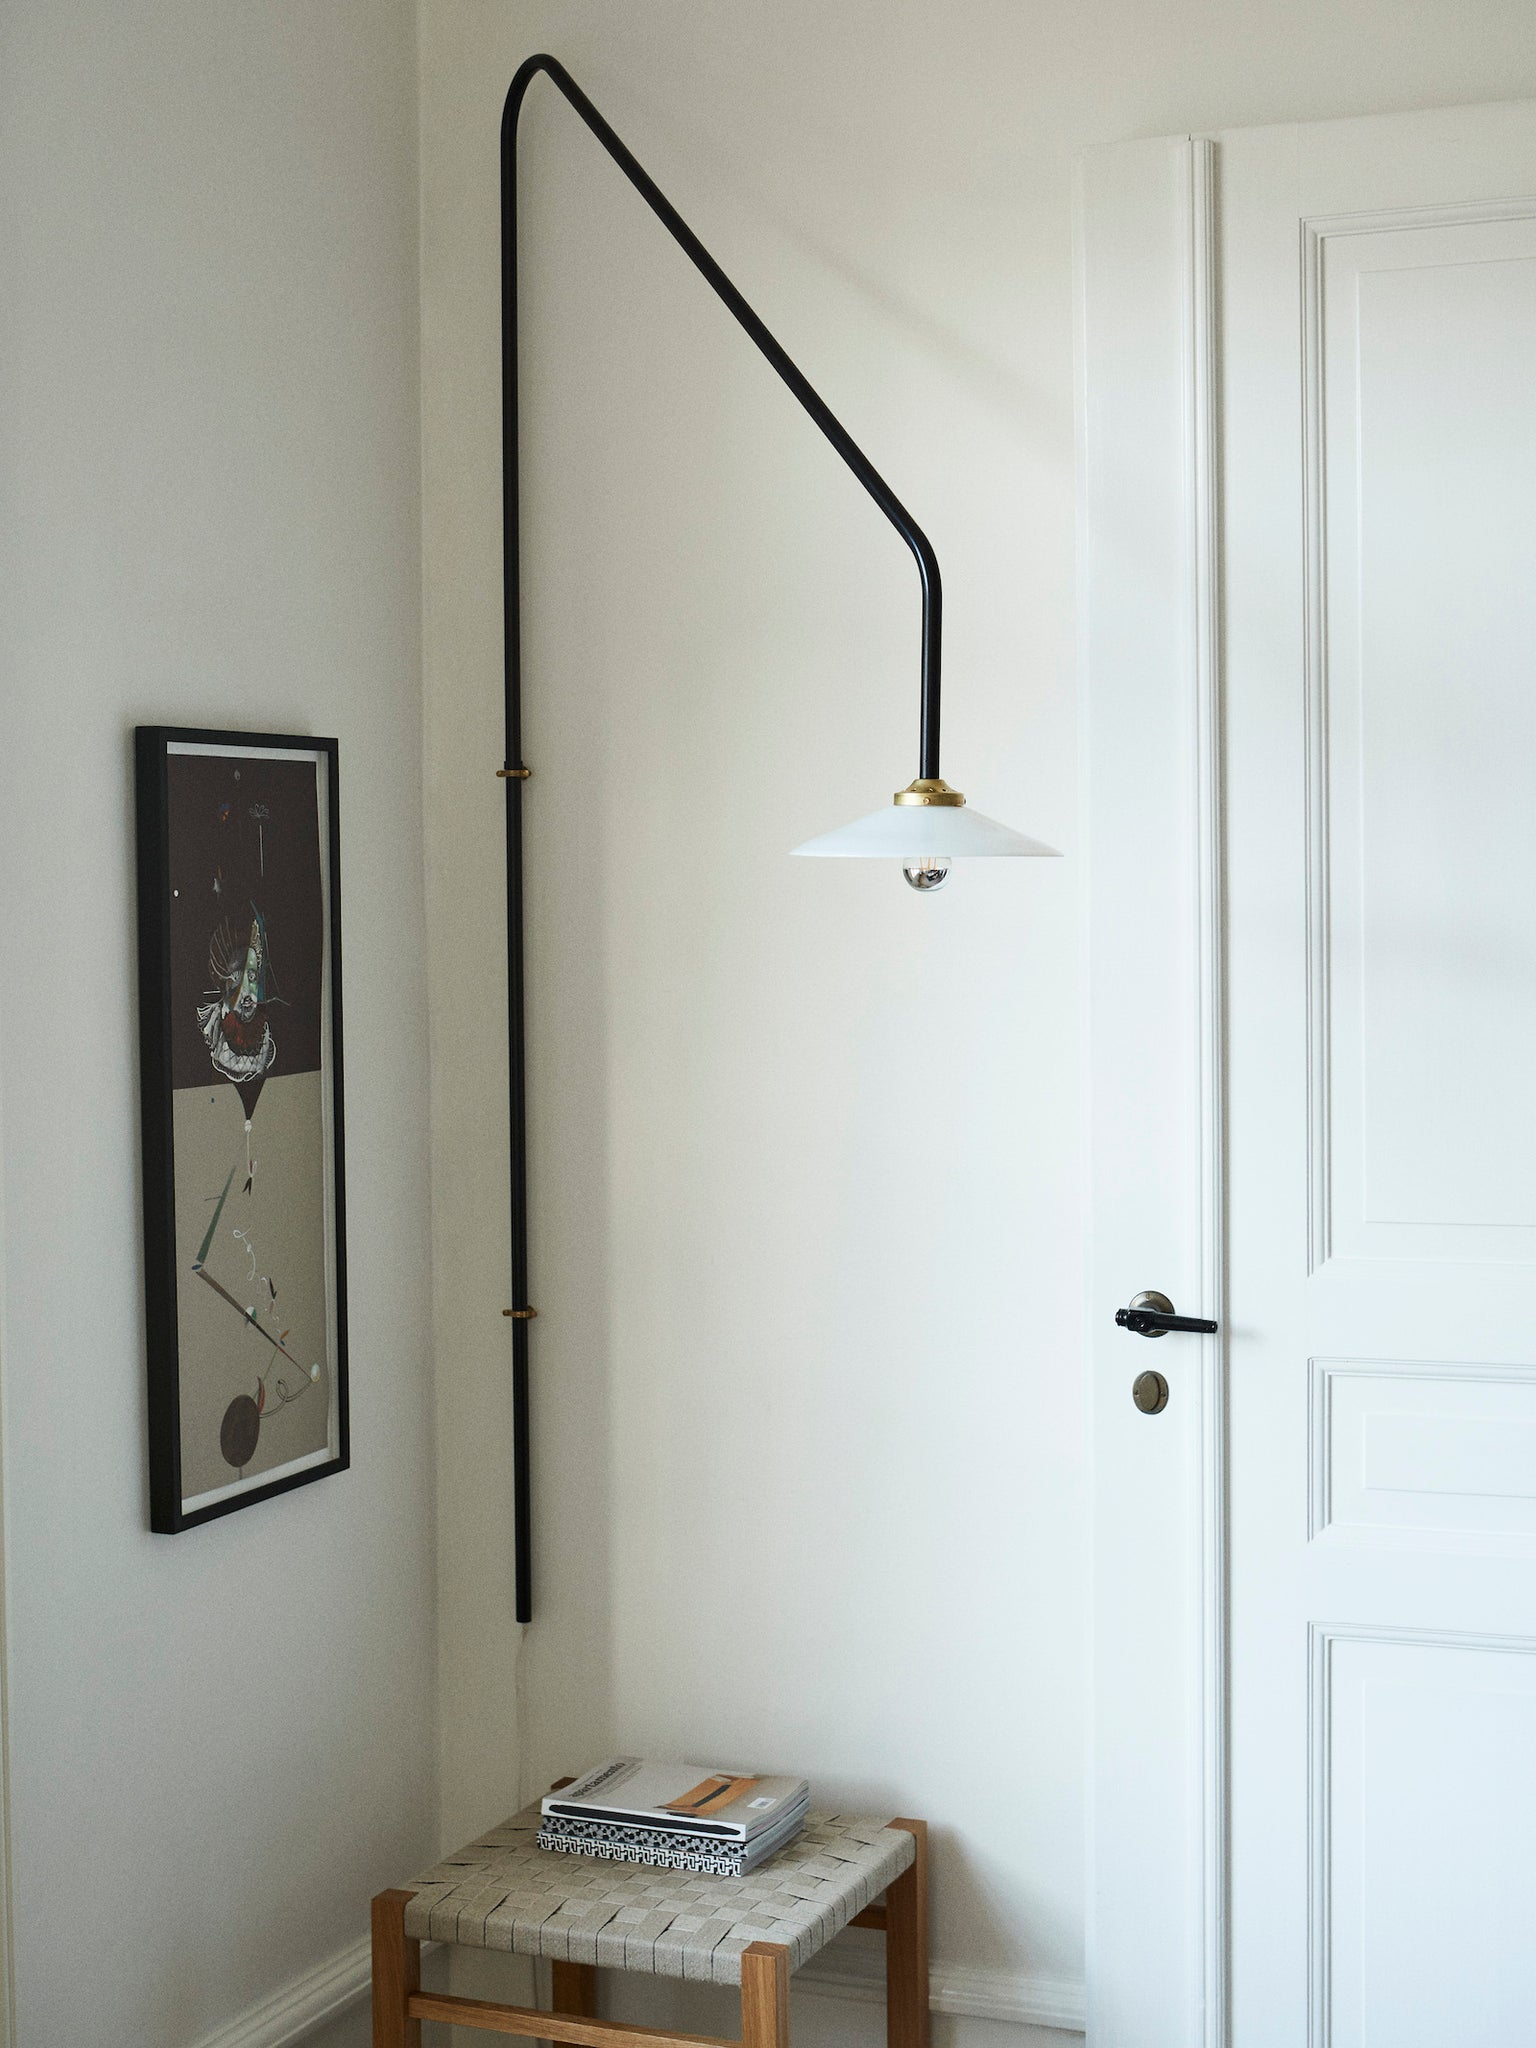 Valerie Objects Hanging Lamp #4 by Muller van Severen